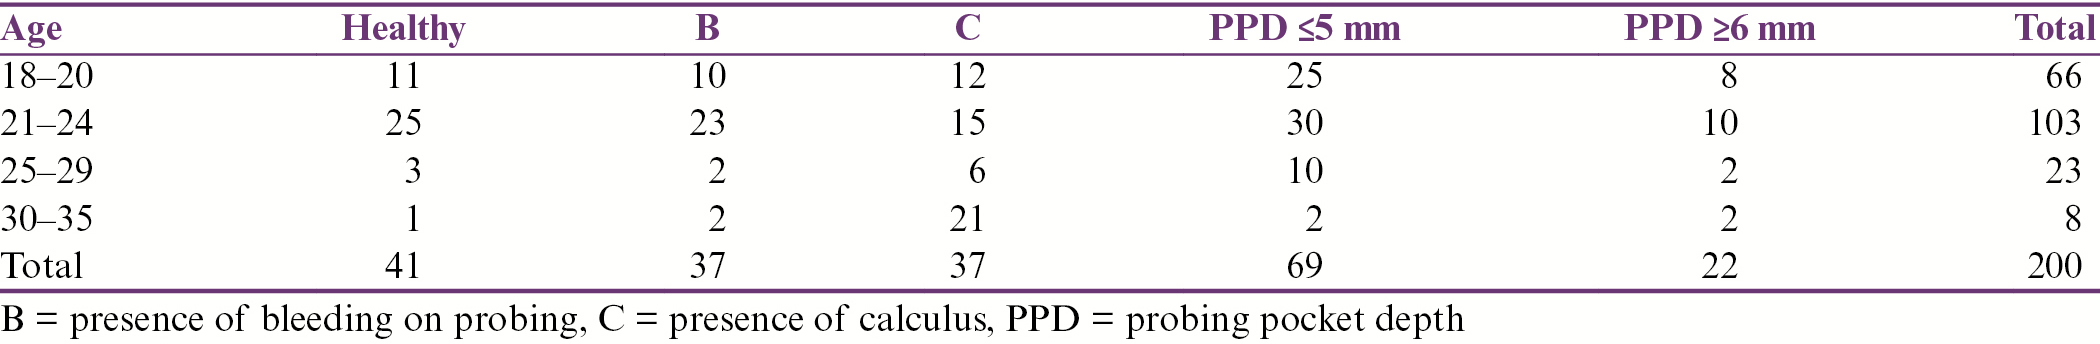 Table 1: Periodontal status and age